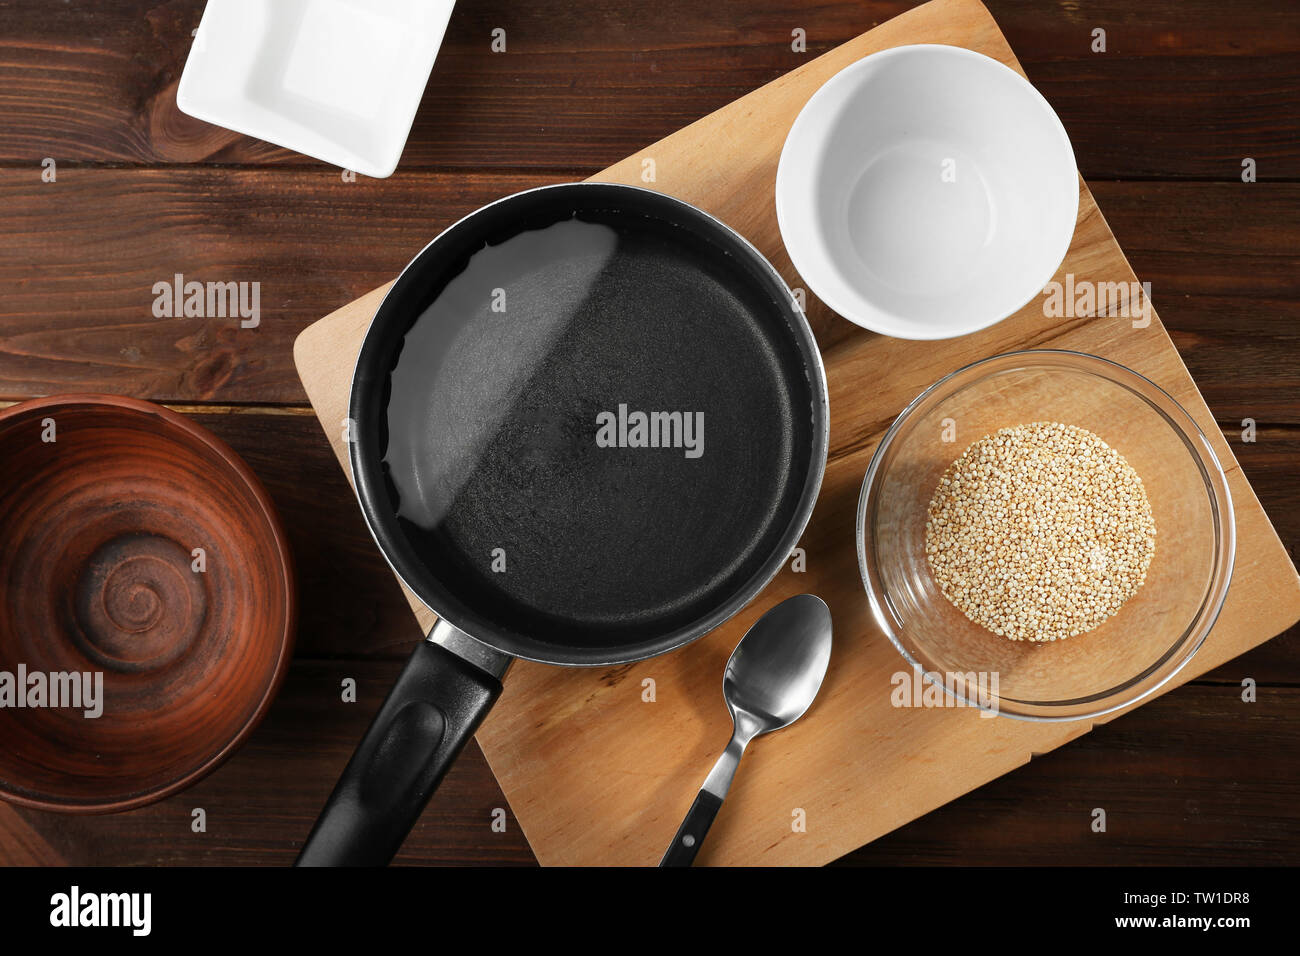 Kitchen utensils and quinoa seeds in bowl on wooden table - Stock Image